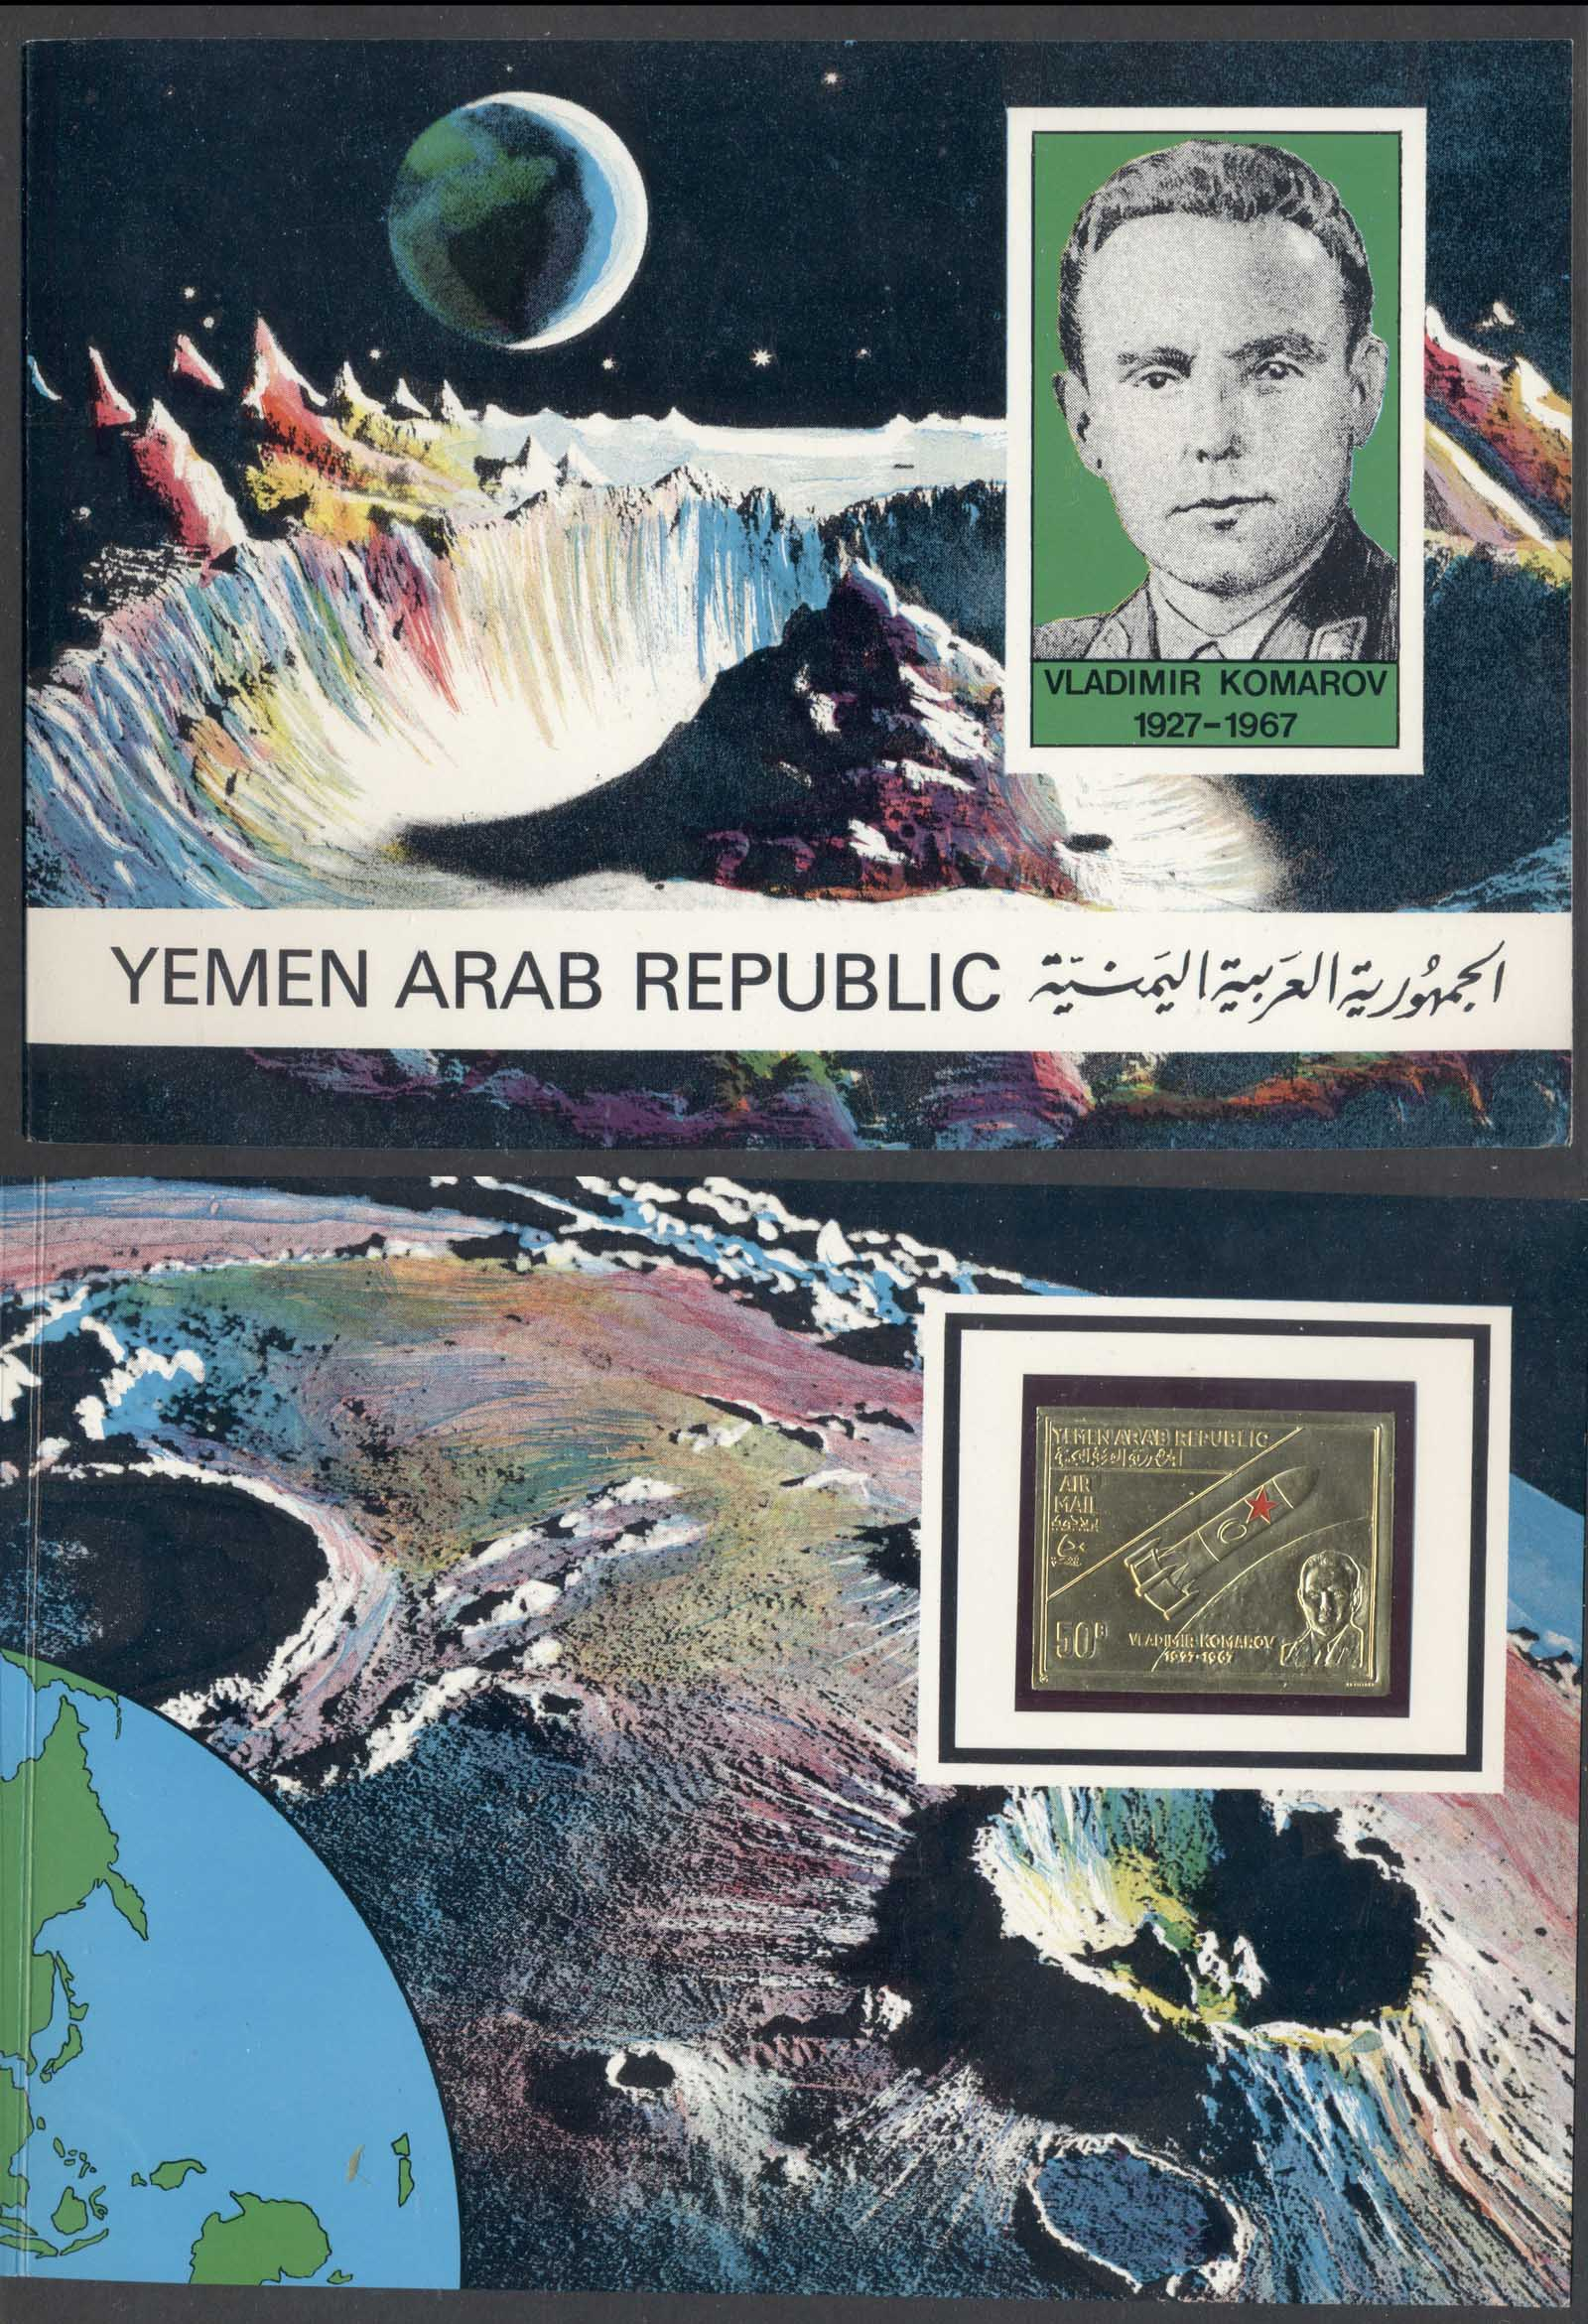 Yemen 1968 Mi#717B Vladimir Komarov IMPERF gold foil embossed in presentation folder